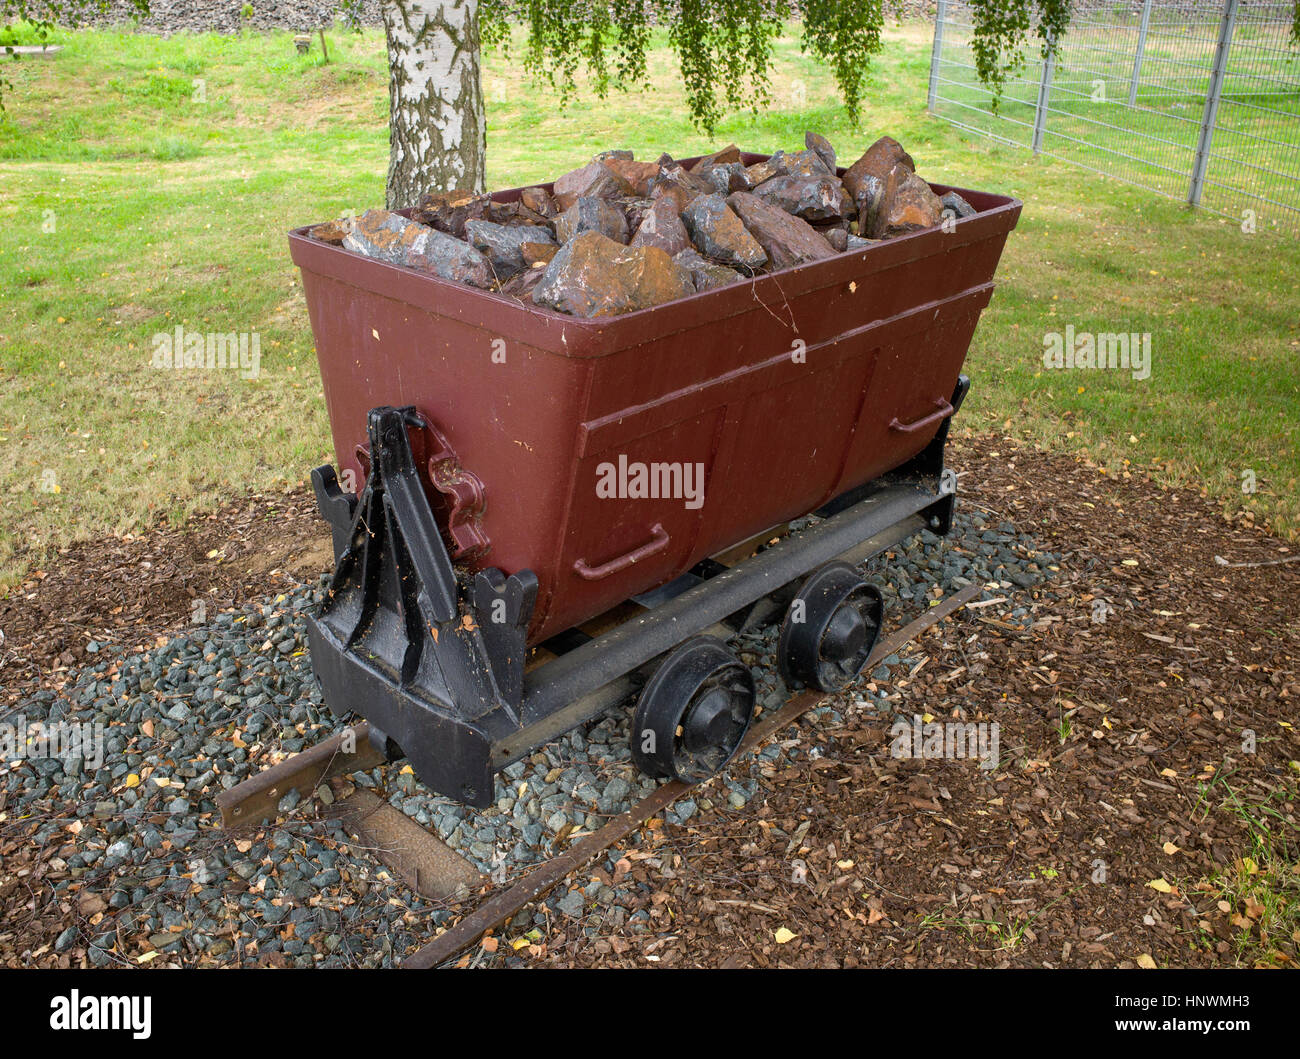 Wagon filled with iron ore from Grube Fortuna iron ore mine on display in Solms, Germany - Stock Image